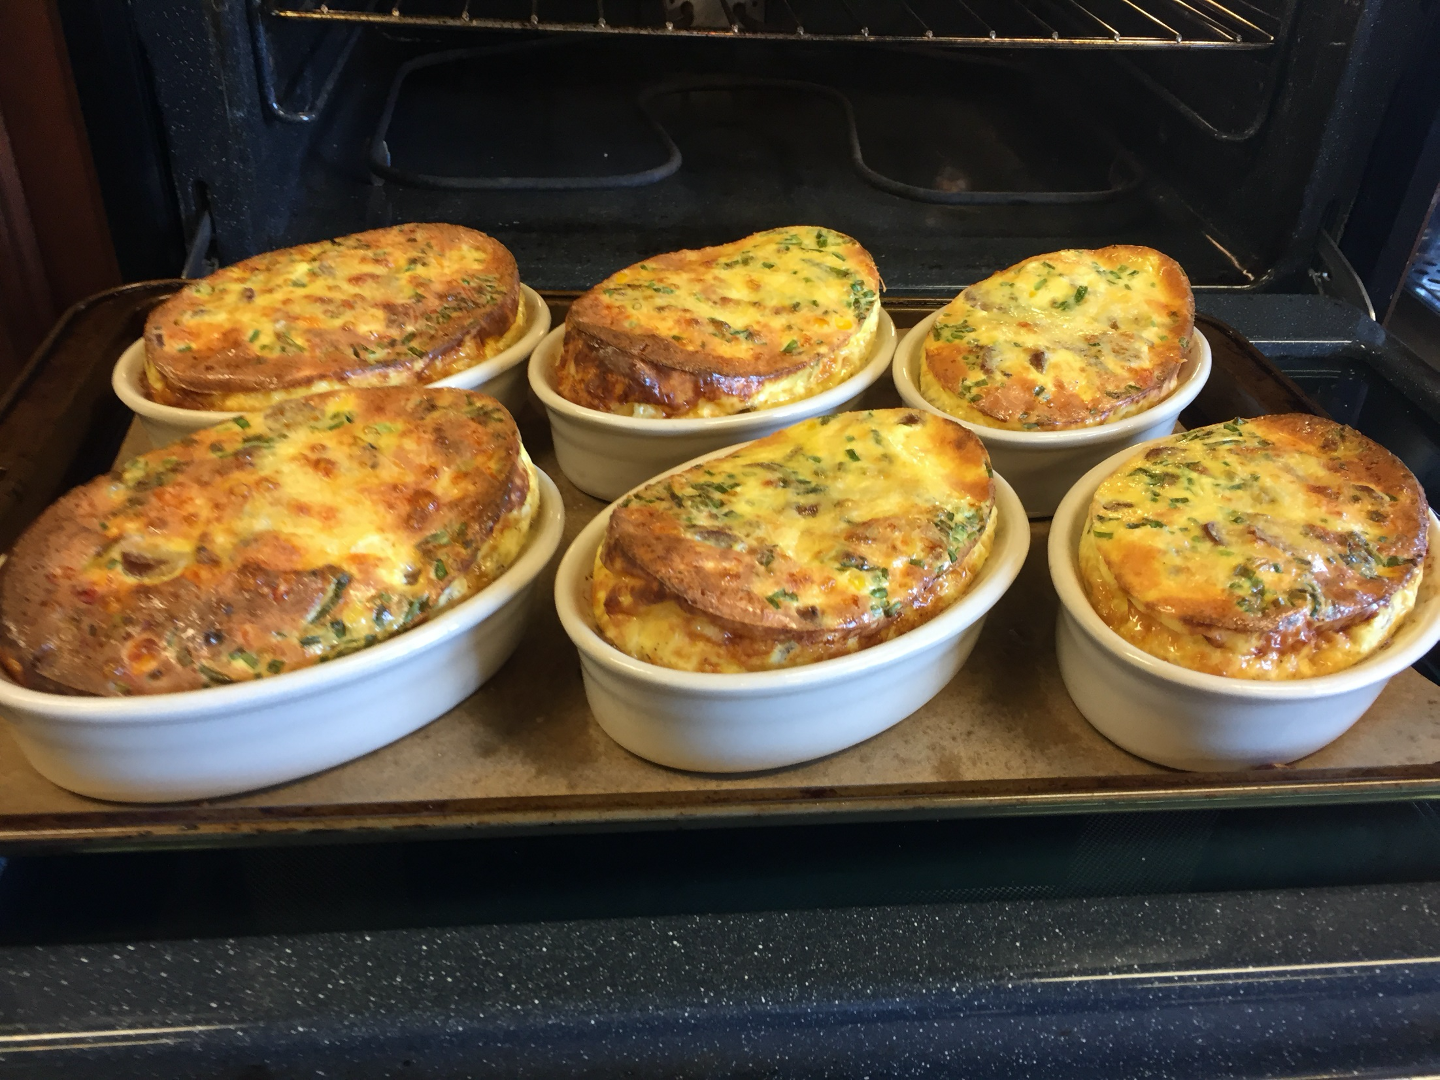 Quiche with chives coming out of oven